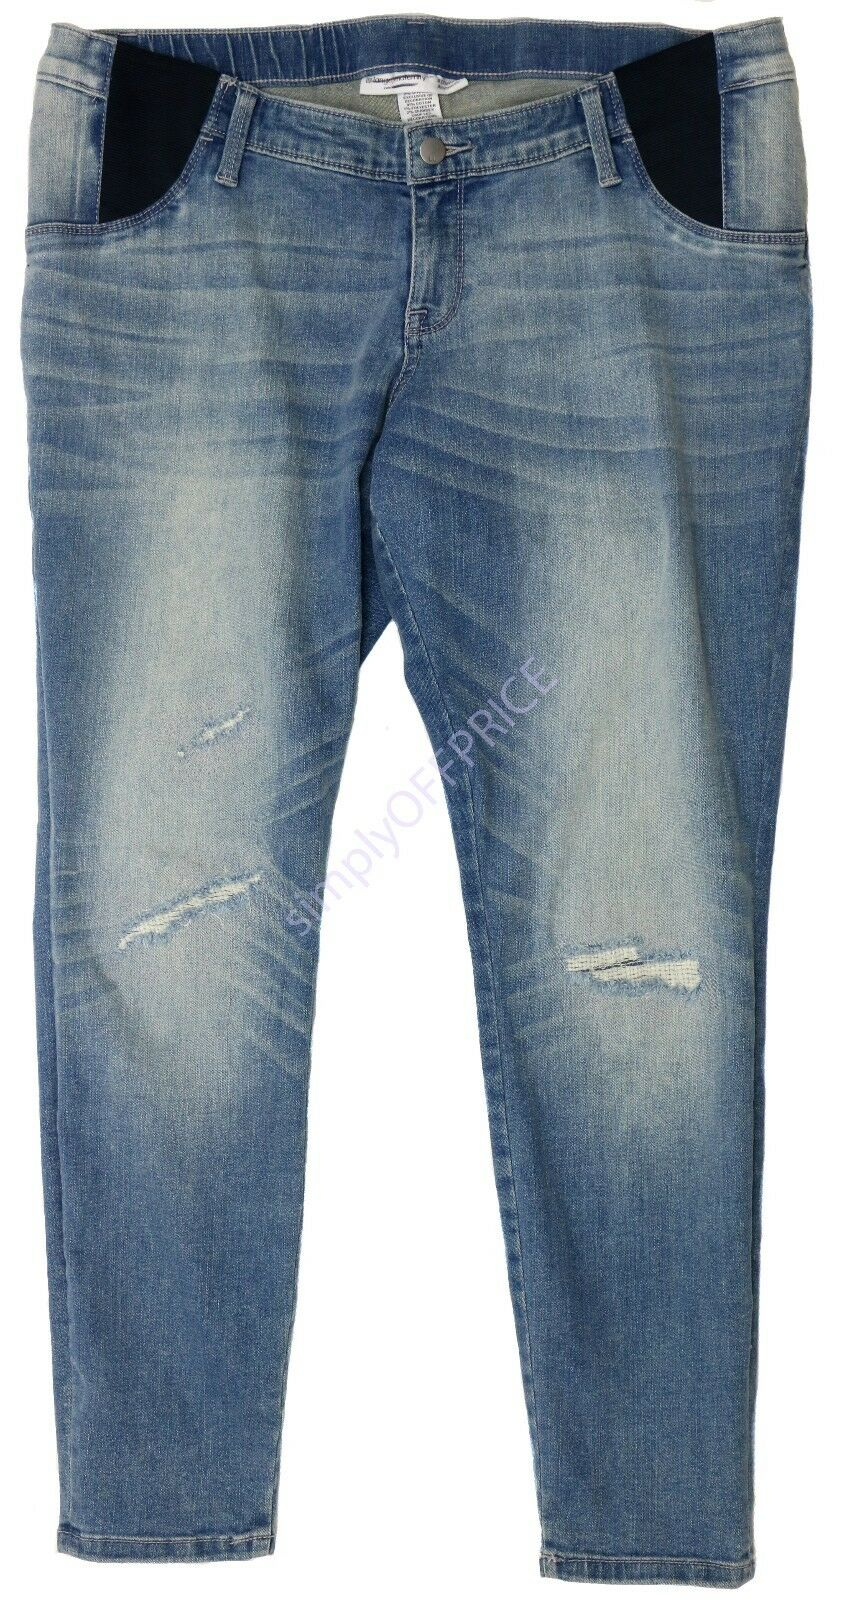 77fecfa2d5dd0 Maternity Inset Under The Belly Distressed Jeggings - Liz Lange for ...